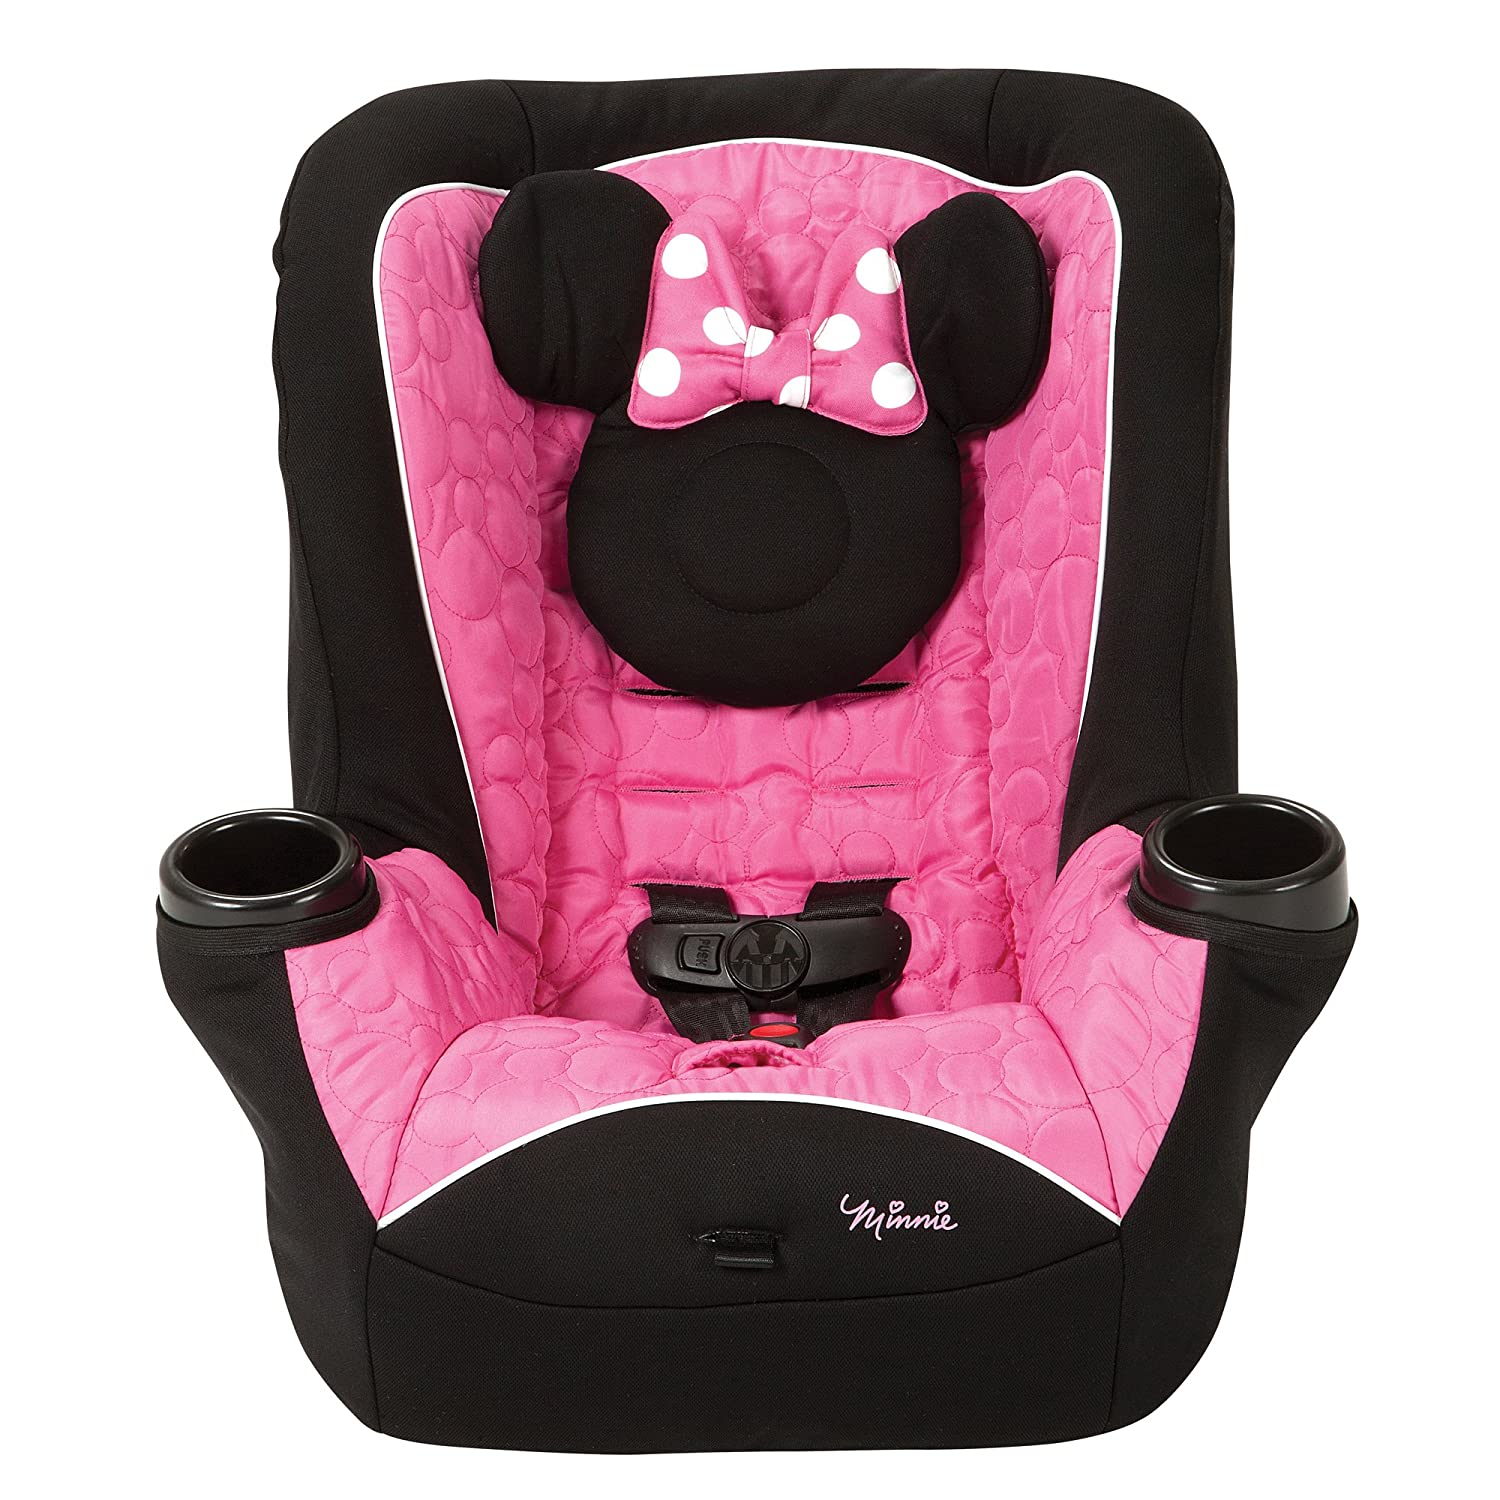 Top 10 Best Convertible Car Seat 2017 Reviews (July. 2018)